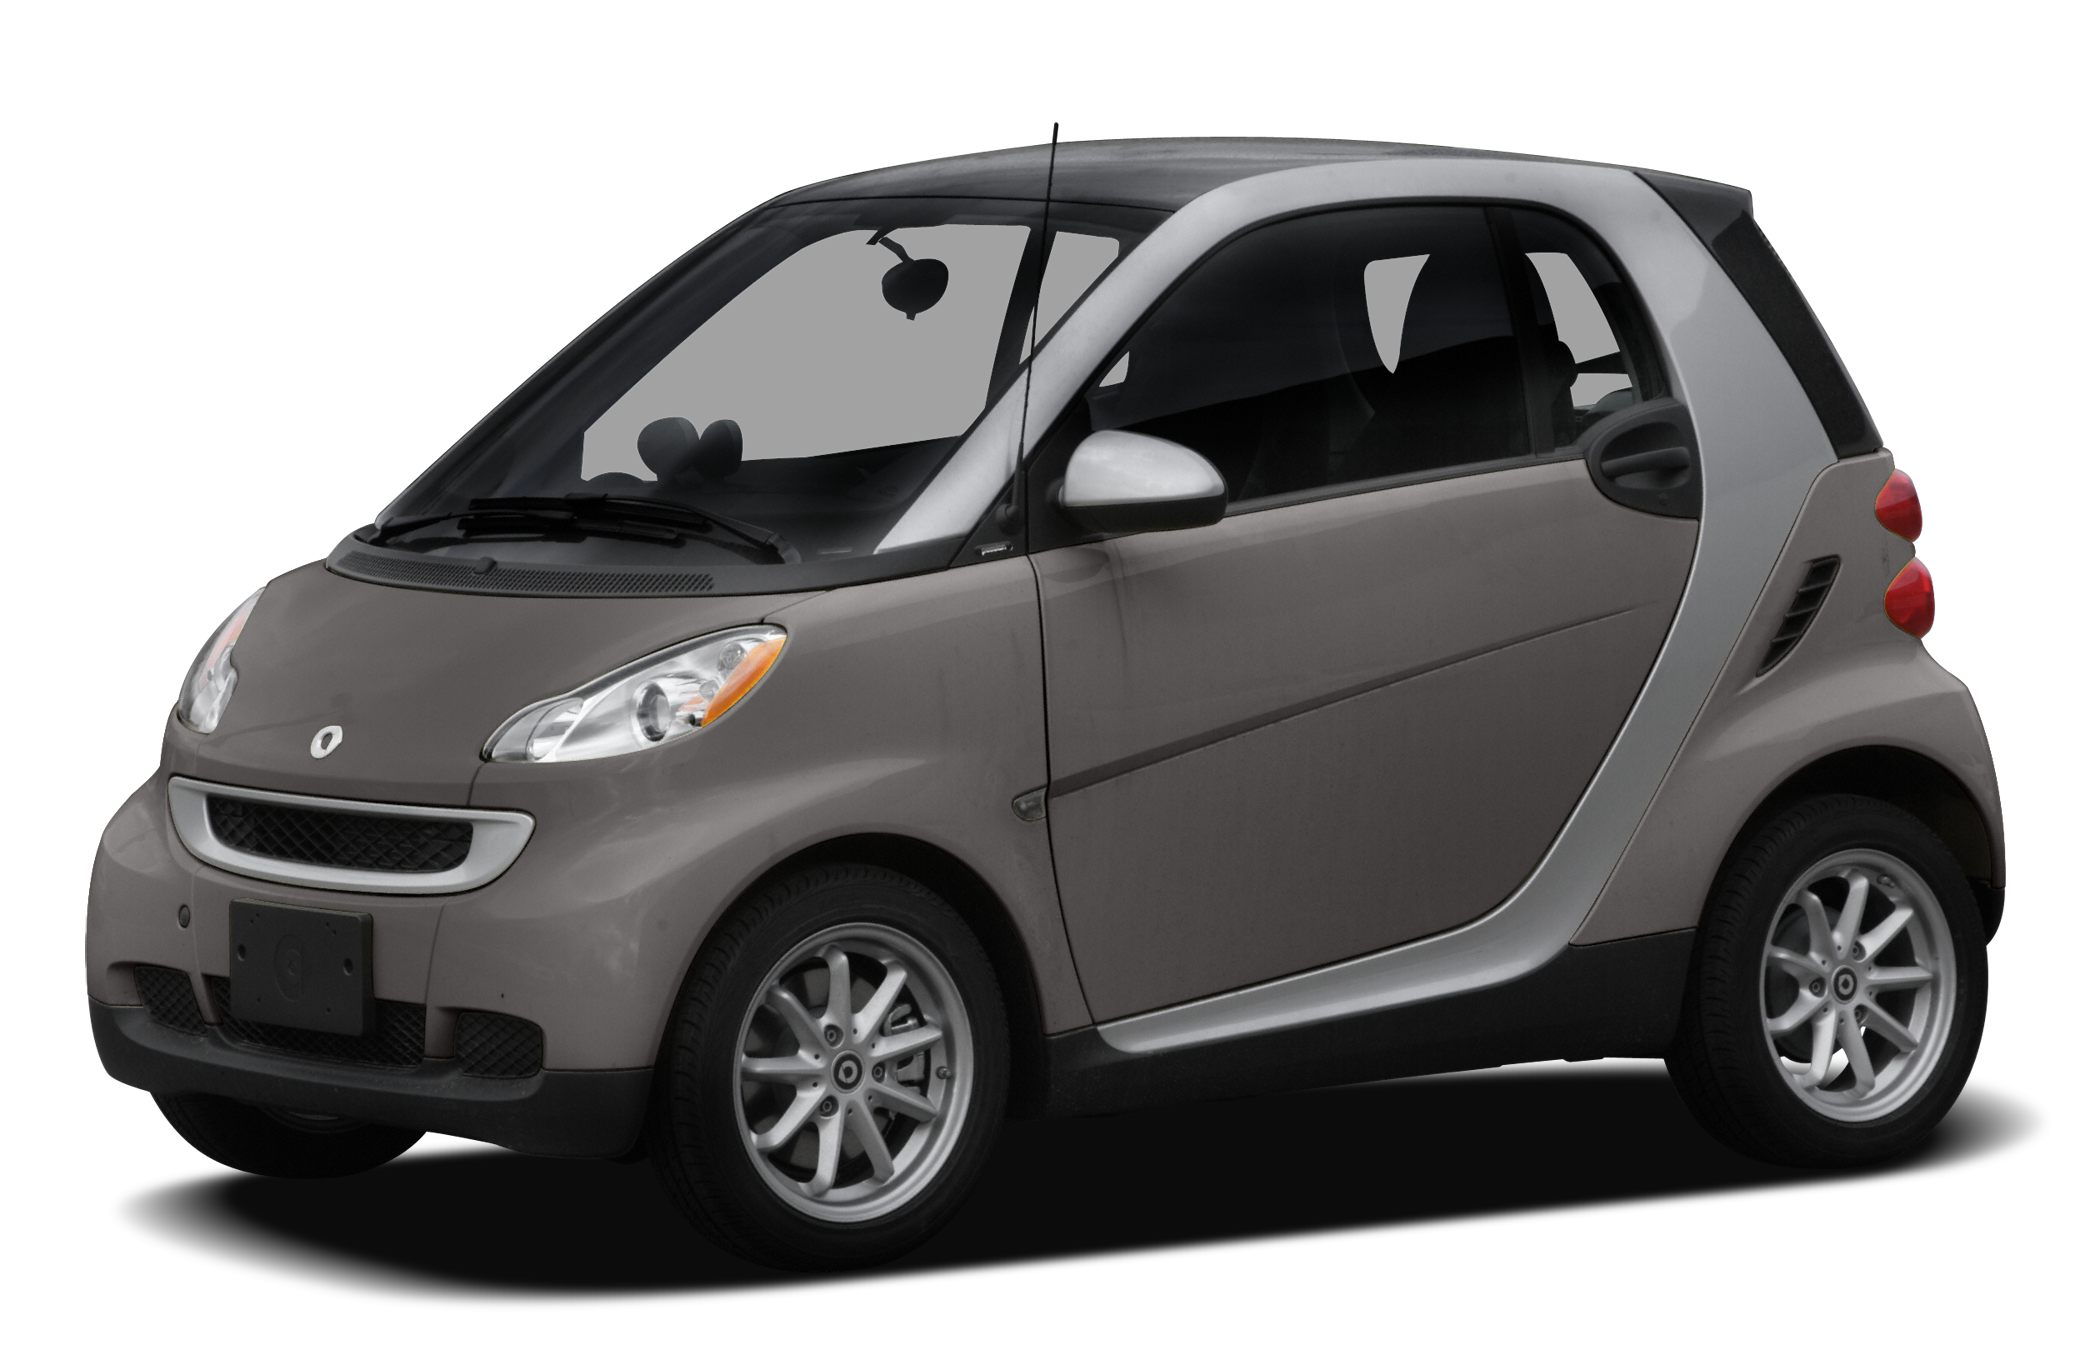 2012 smart fortwo pure Miles 24503Color Gray Stock 8402 VIN WMEEJ3BA6CK571268